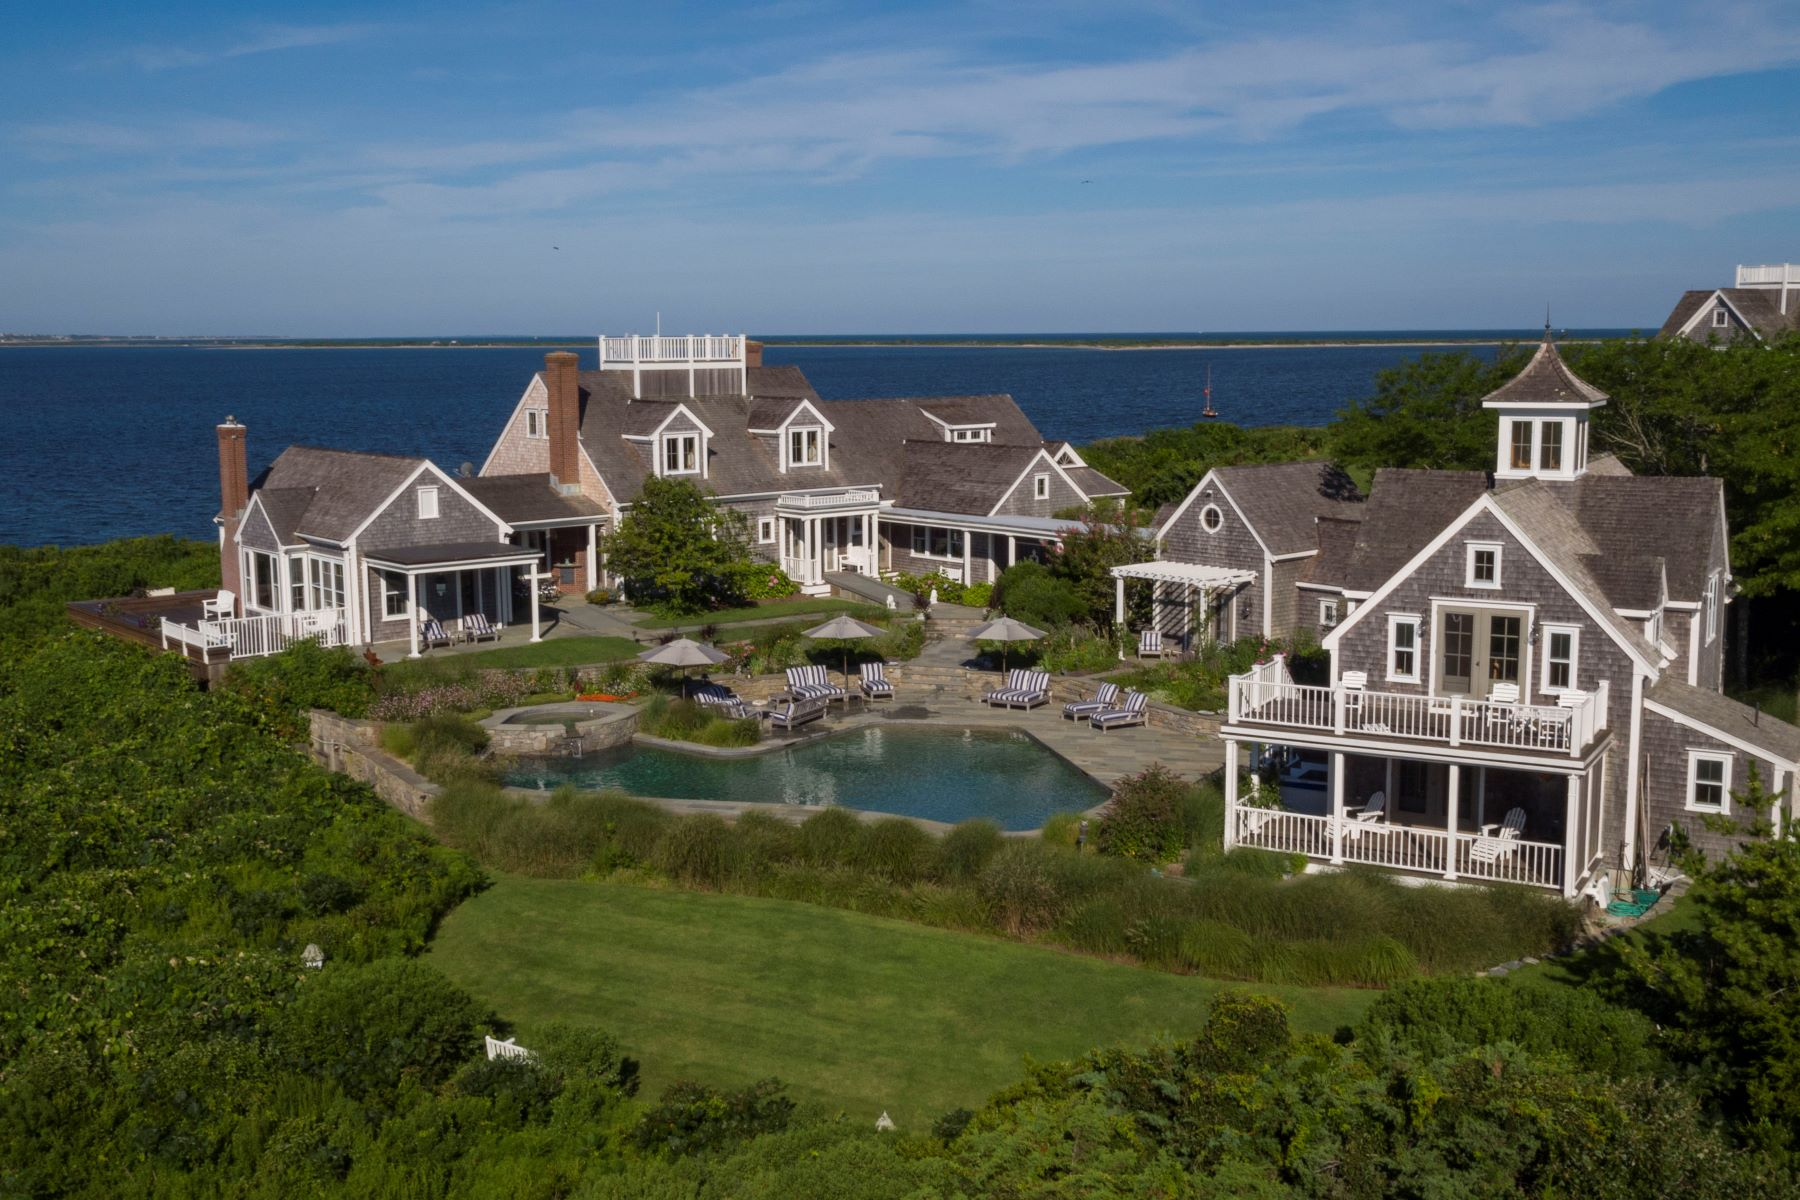 House for Sale at Entirely Unique Waterfront Estate 72 Pocomo Road 78 Pocomo Road Nantucket, Massachusetts 02554 United States